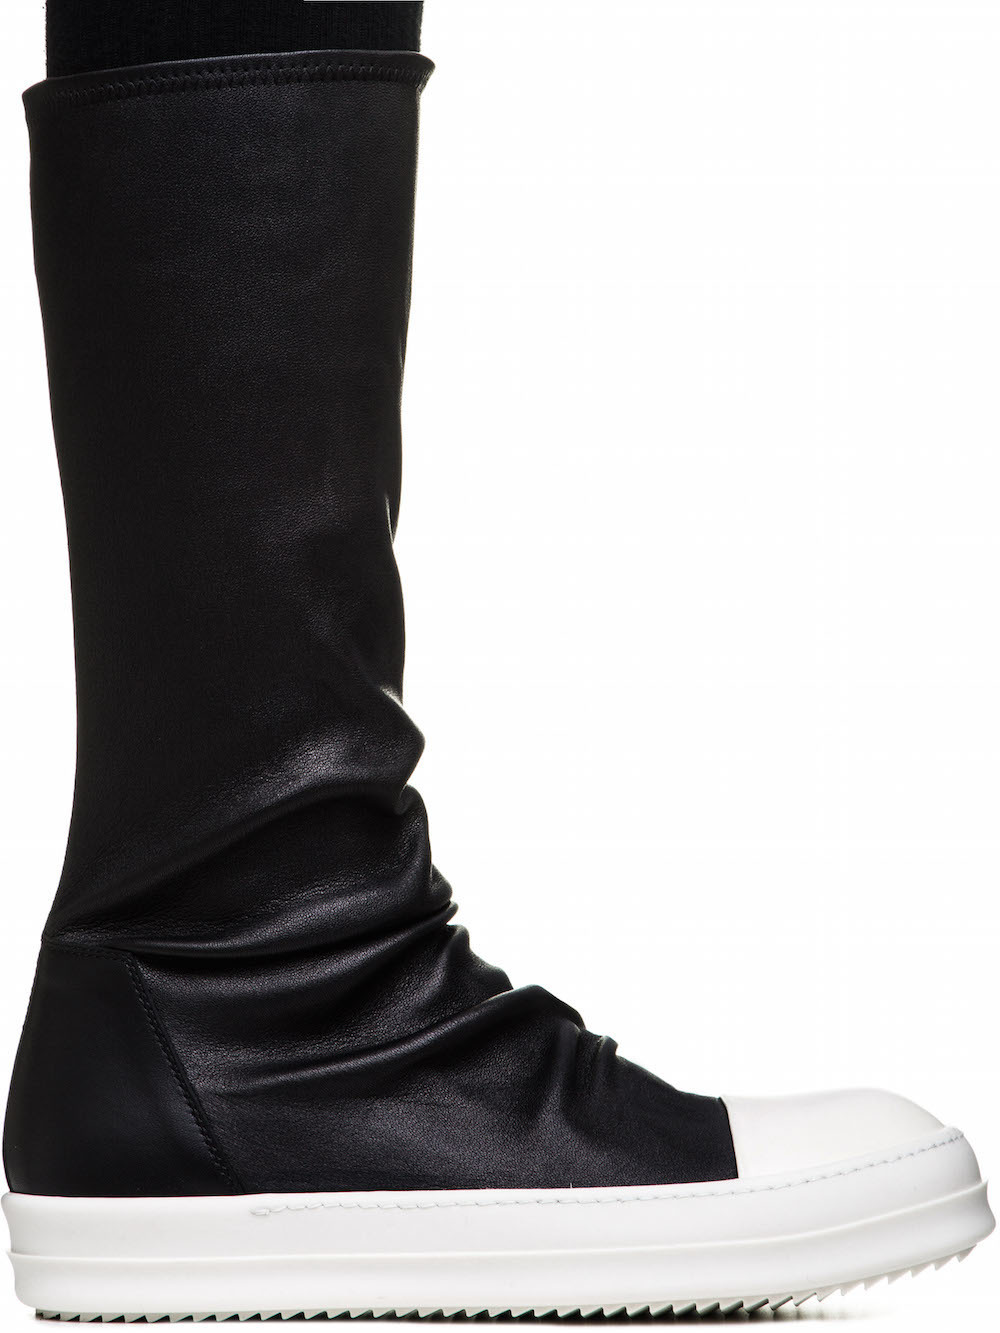 Rick Owens sock sneaker boots clearance with mastercard clearance very cheap 8nldWG8KHG